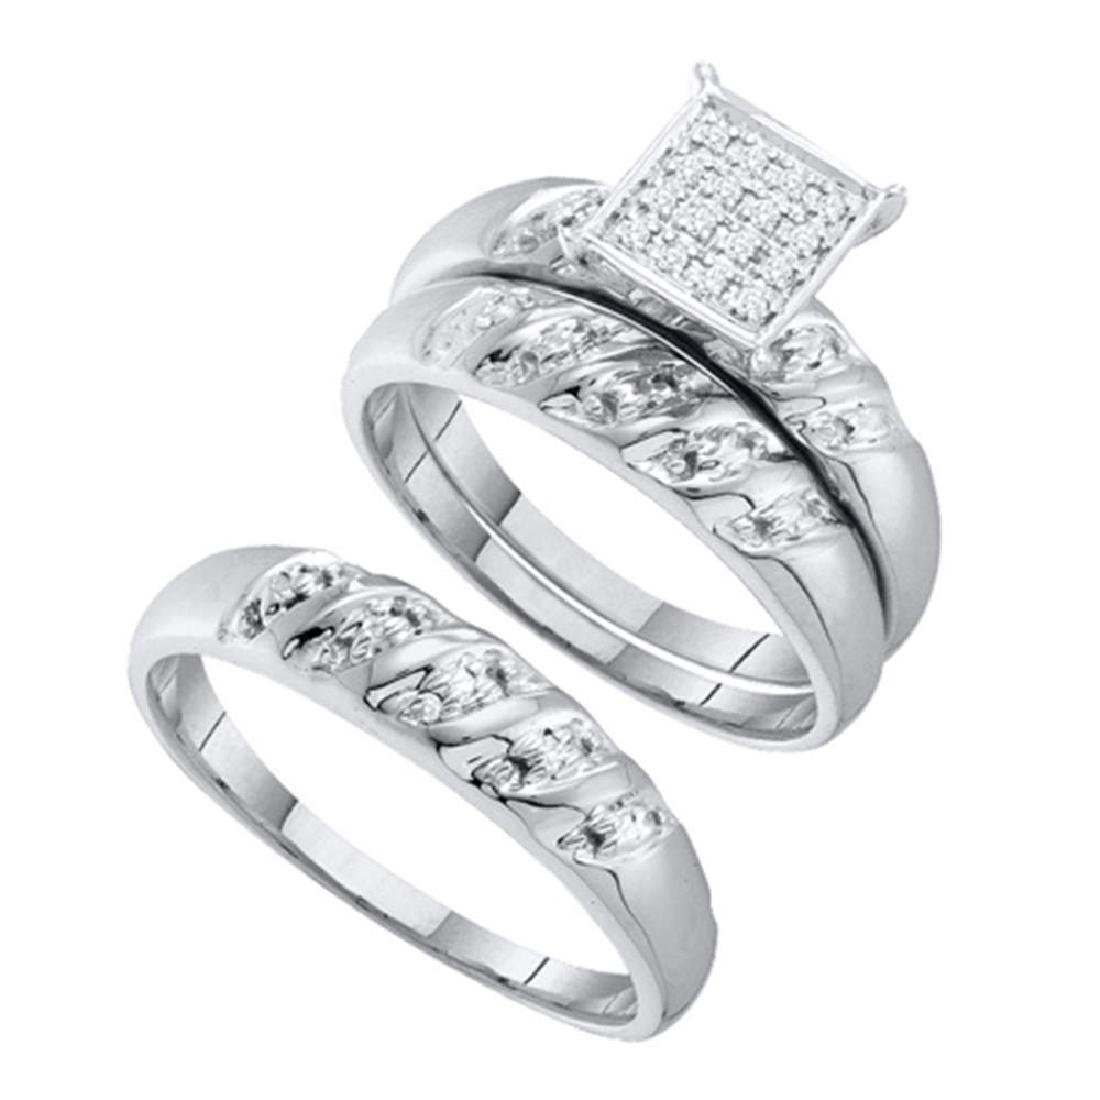 0.08 CTW His & Hers Diamond Cluster Matching Bridal